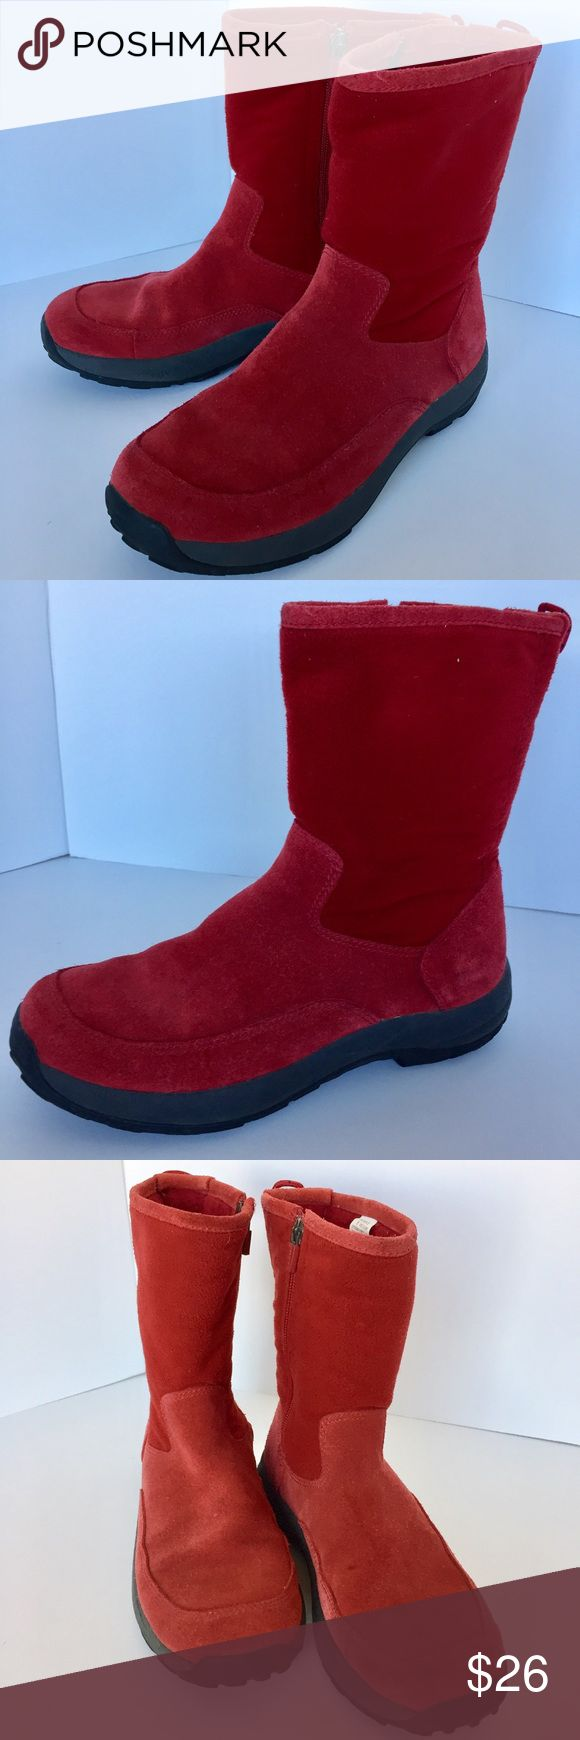 LL Bean Red Suede-Fleece Lined Boots Super cute and perfect for the cold! Fleece lining, side zipper and rubber soles. Pre worn in very good condition. Suede shows normal wear with very small spots (see photo). No Trades. TB1265. L.L. Bean Shoes Winter & Rain Boots